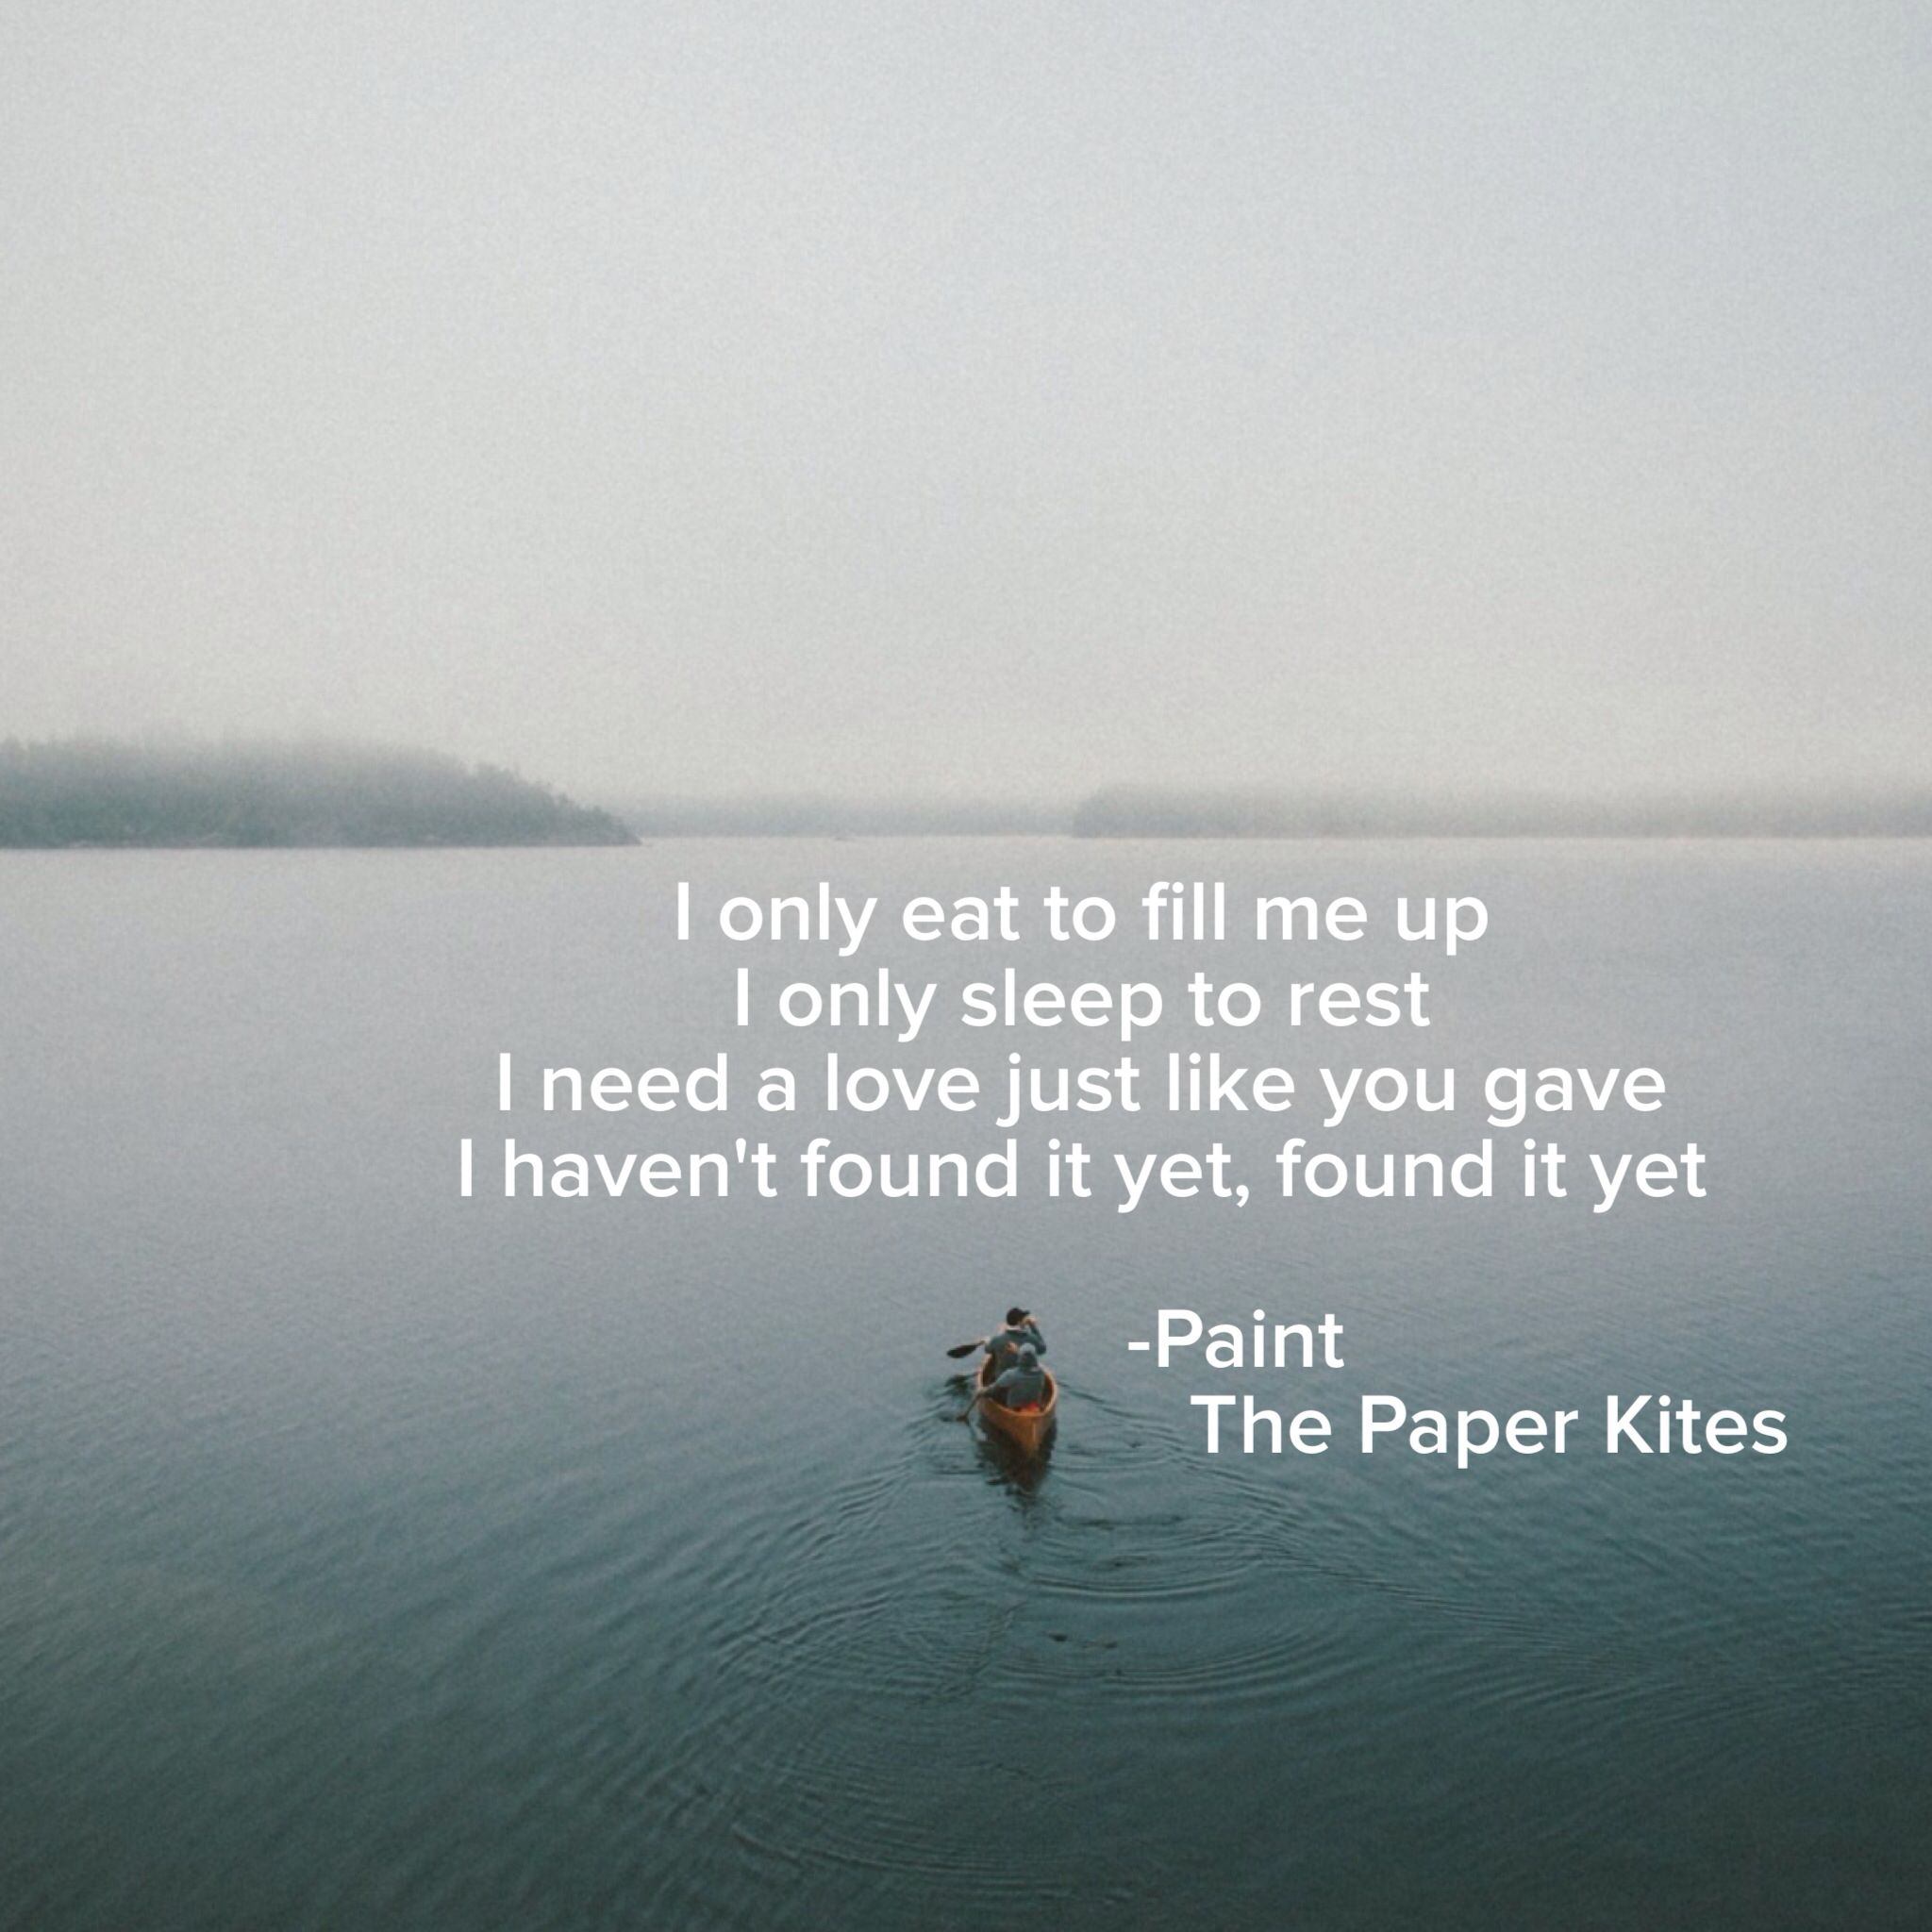 Paint - the paper kites … | Poetry/Lyrics/Quotes | The p…